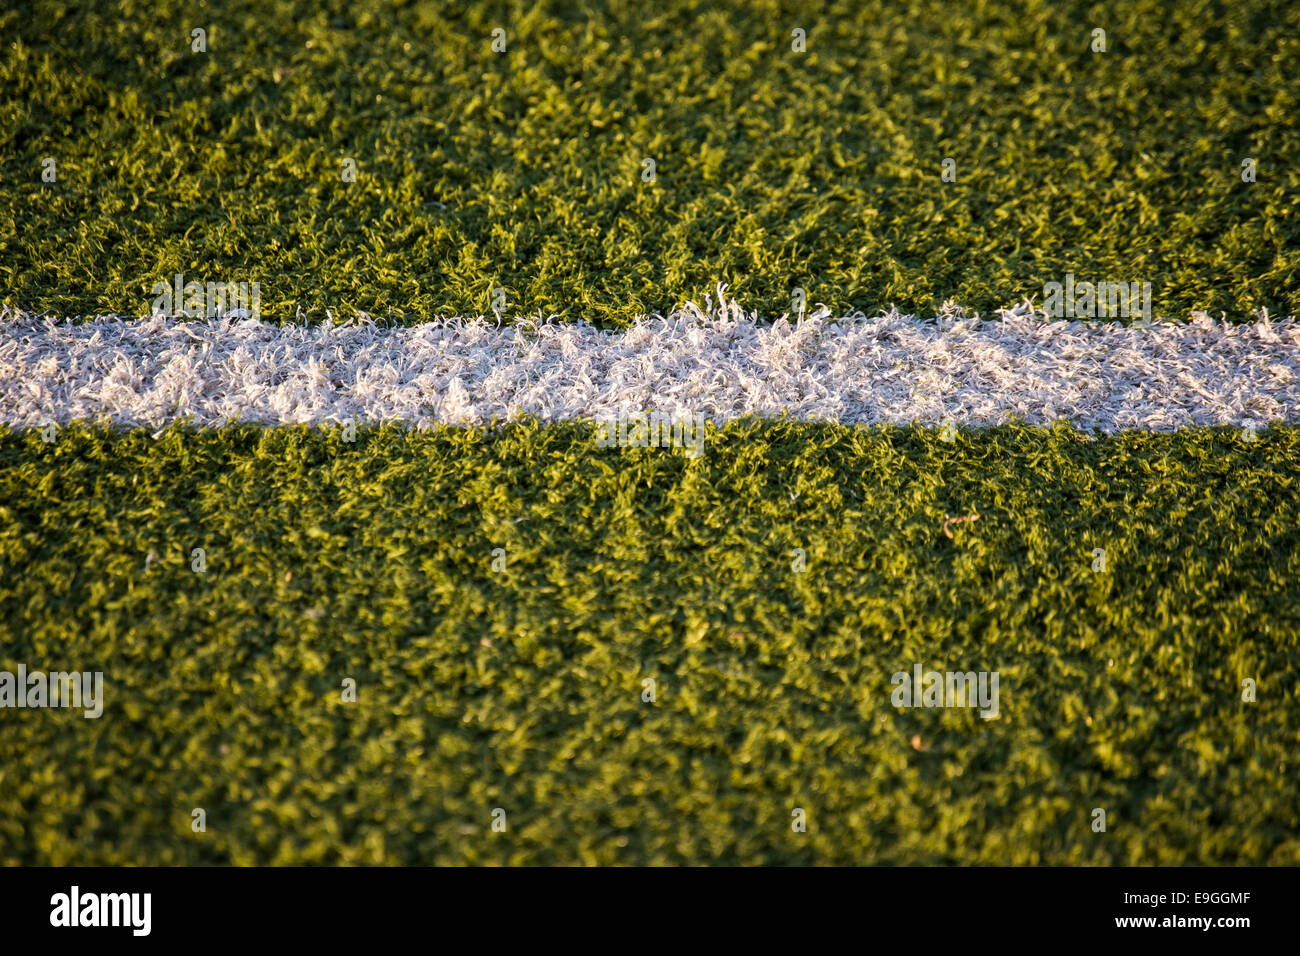 Part of a white line on an astro turf - Stock Image